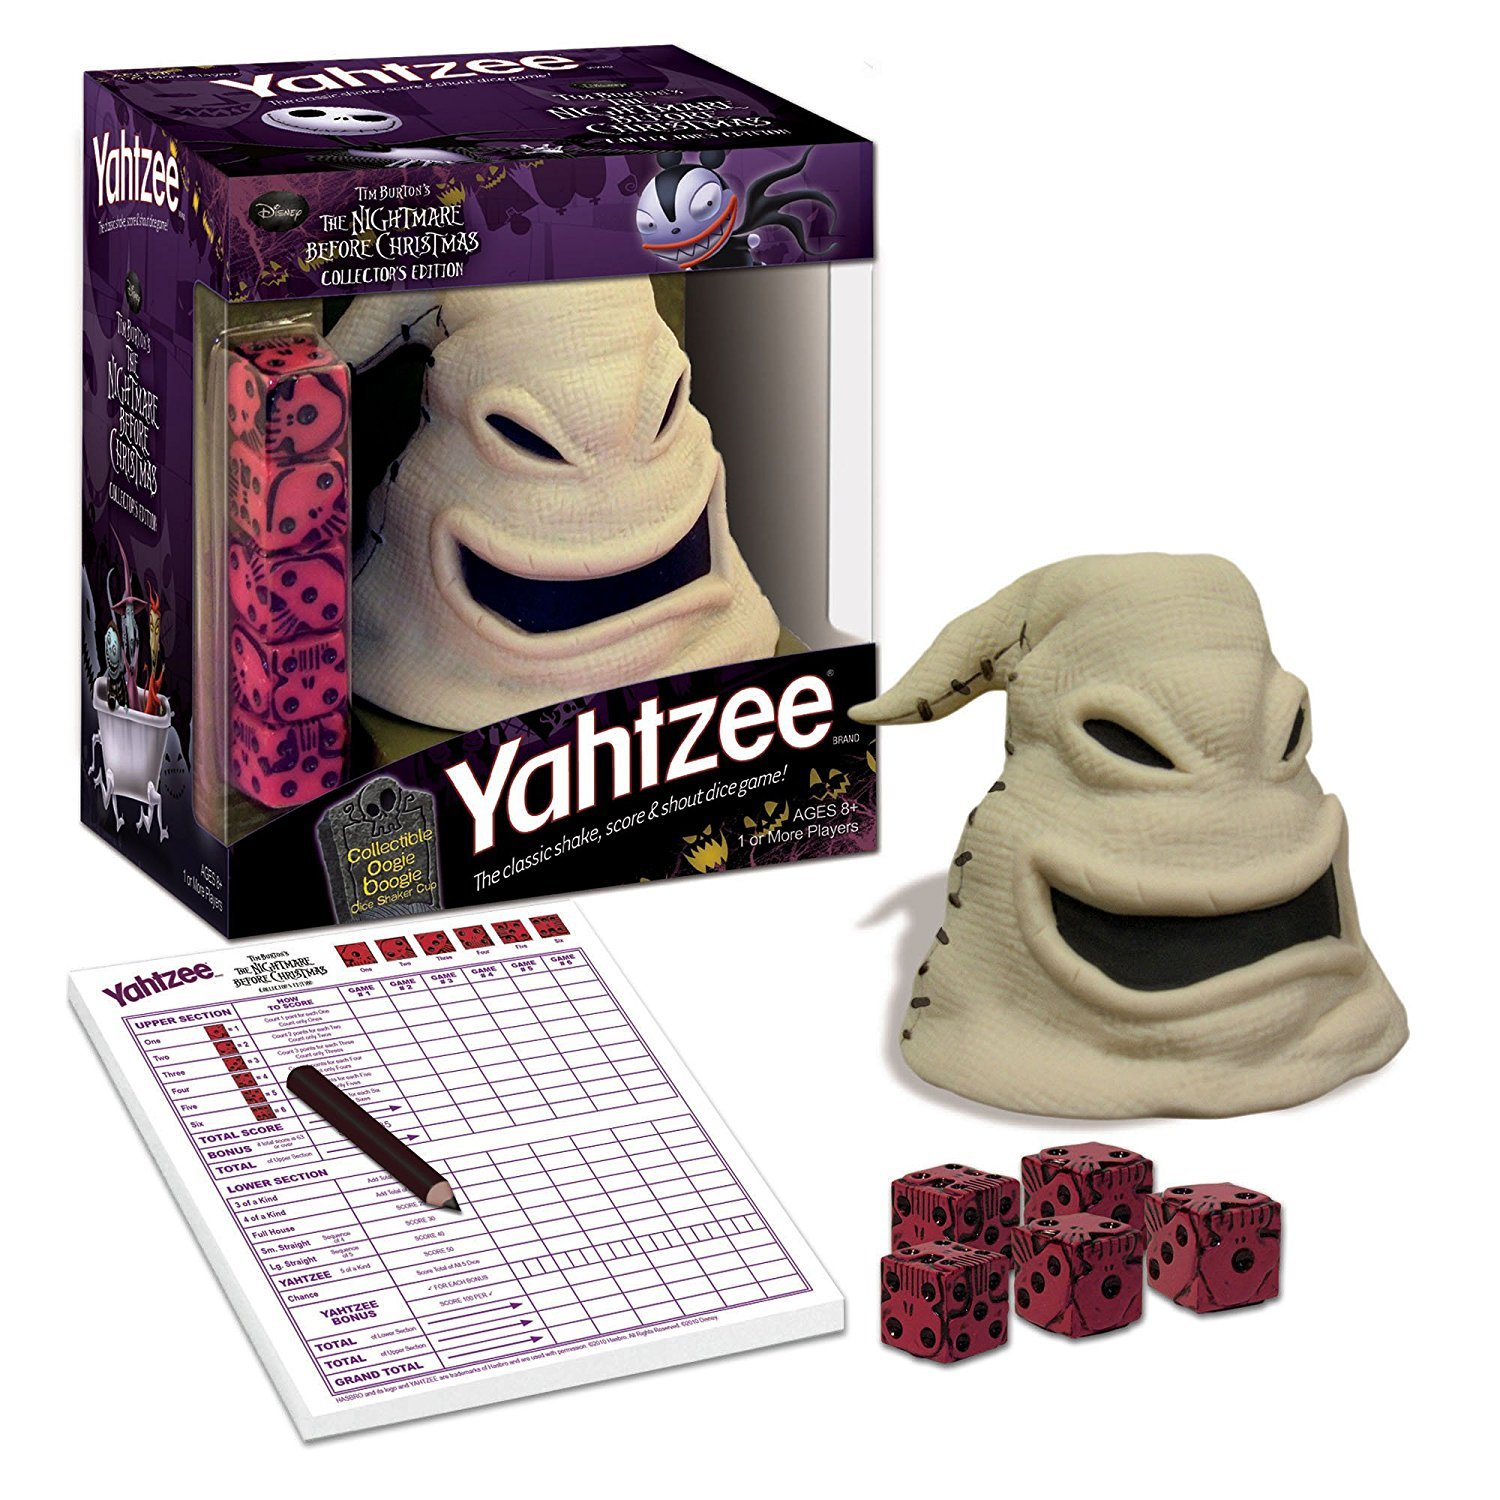 The Nightmare Before Christmas Yahtzee- Oogie Boogie Limited Release Glow In The Dark Dice Cup by Yatzee